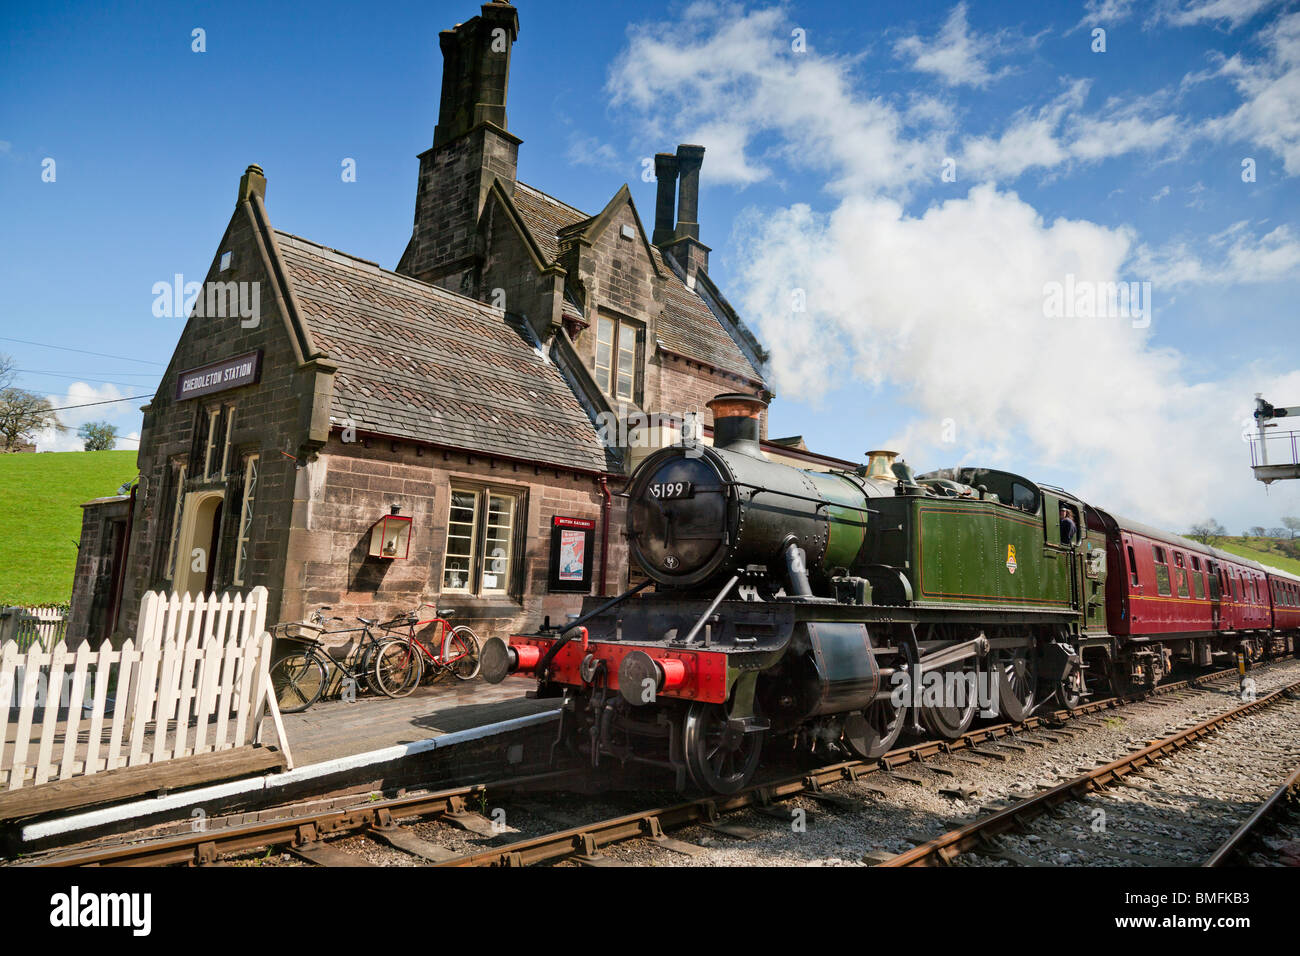 A steam train passes through Cheddleton station on the Churnet Valley Railway. - Stock Image